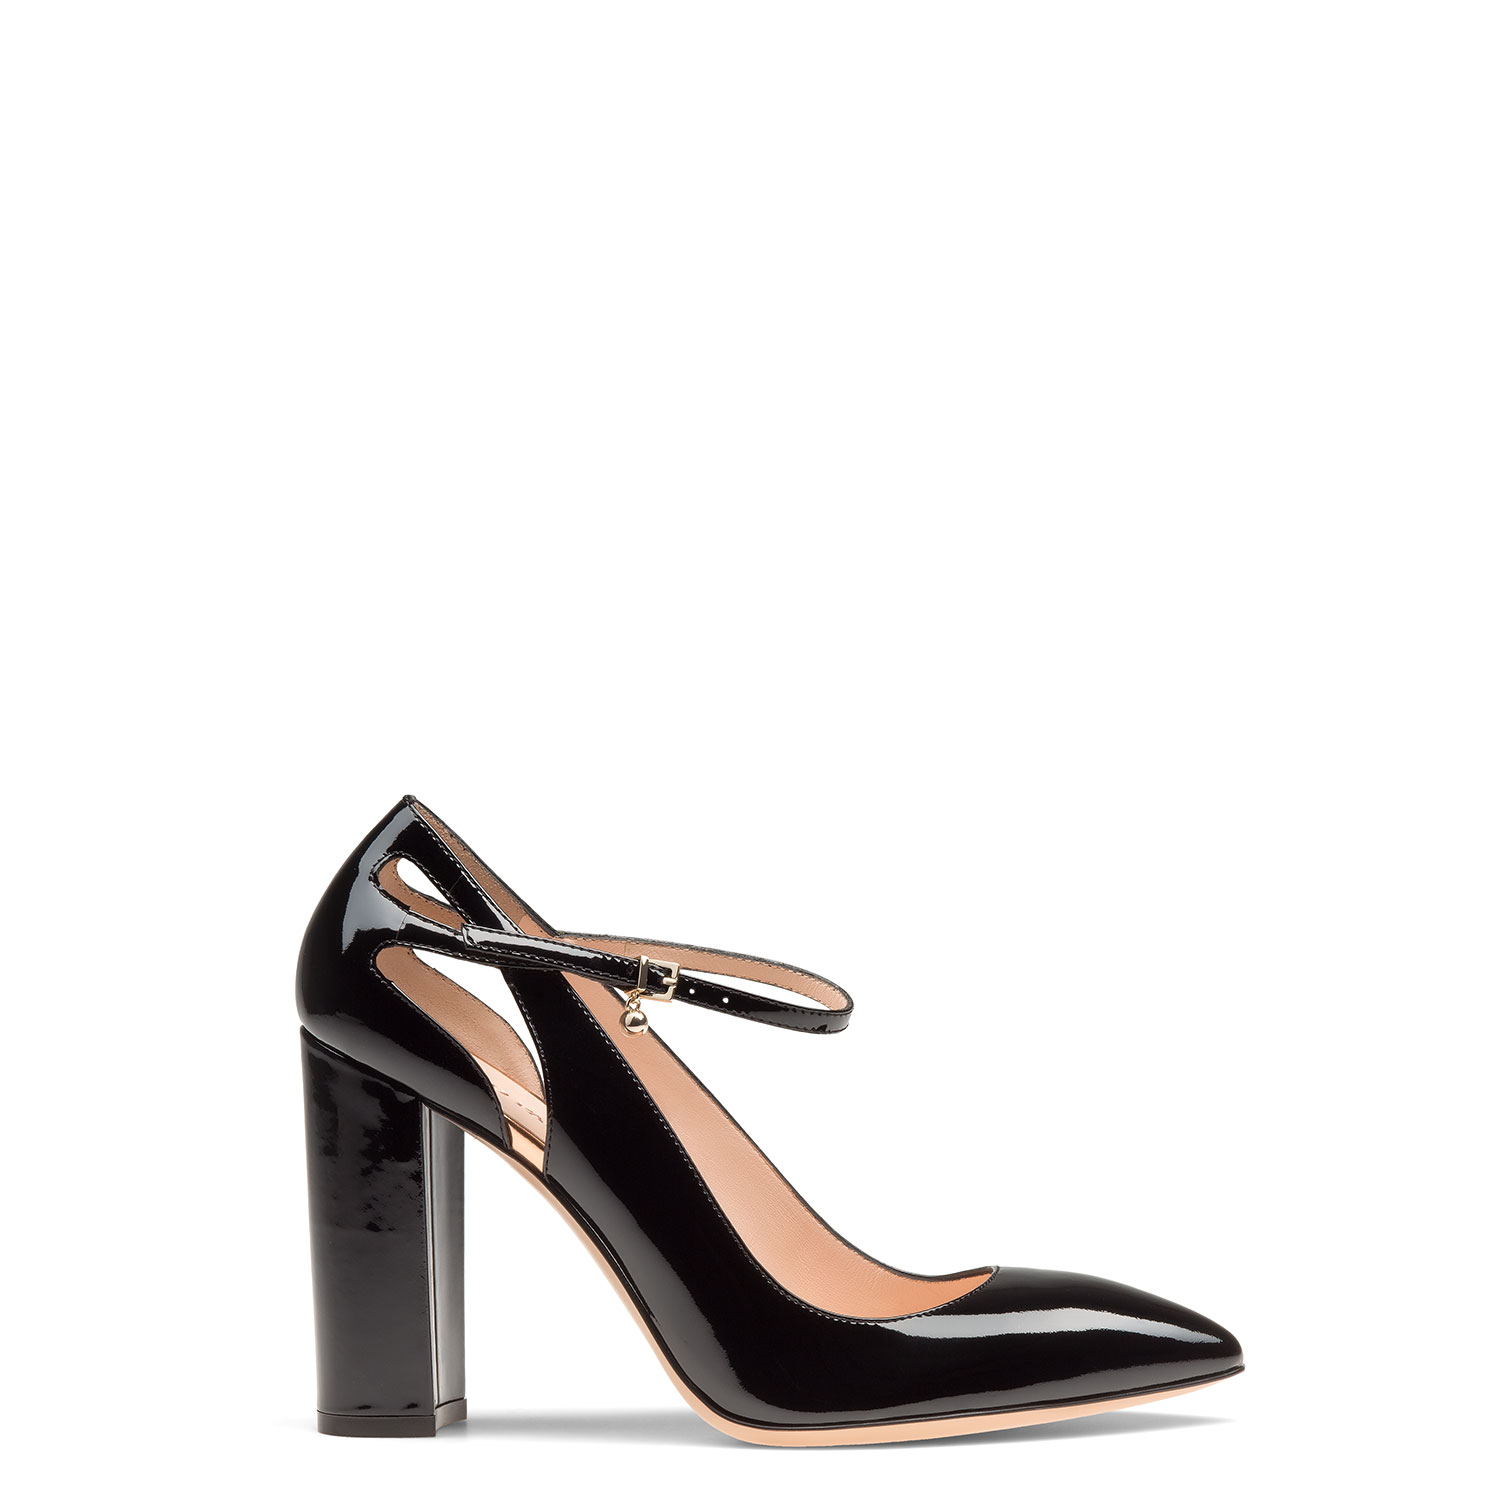 Women's shoes CARLO PAZOLINI FL-FLN3-1